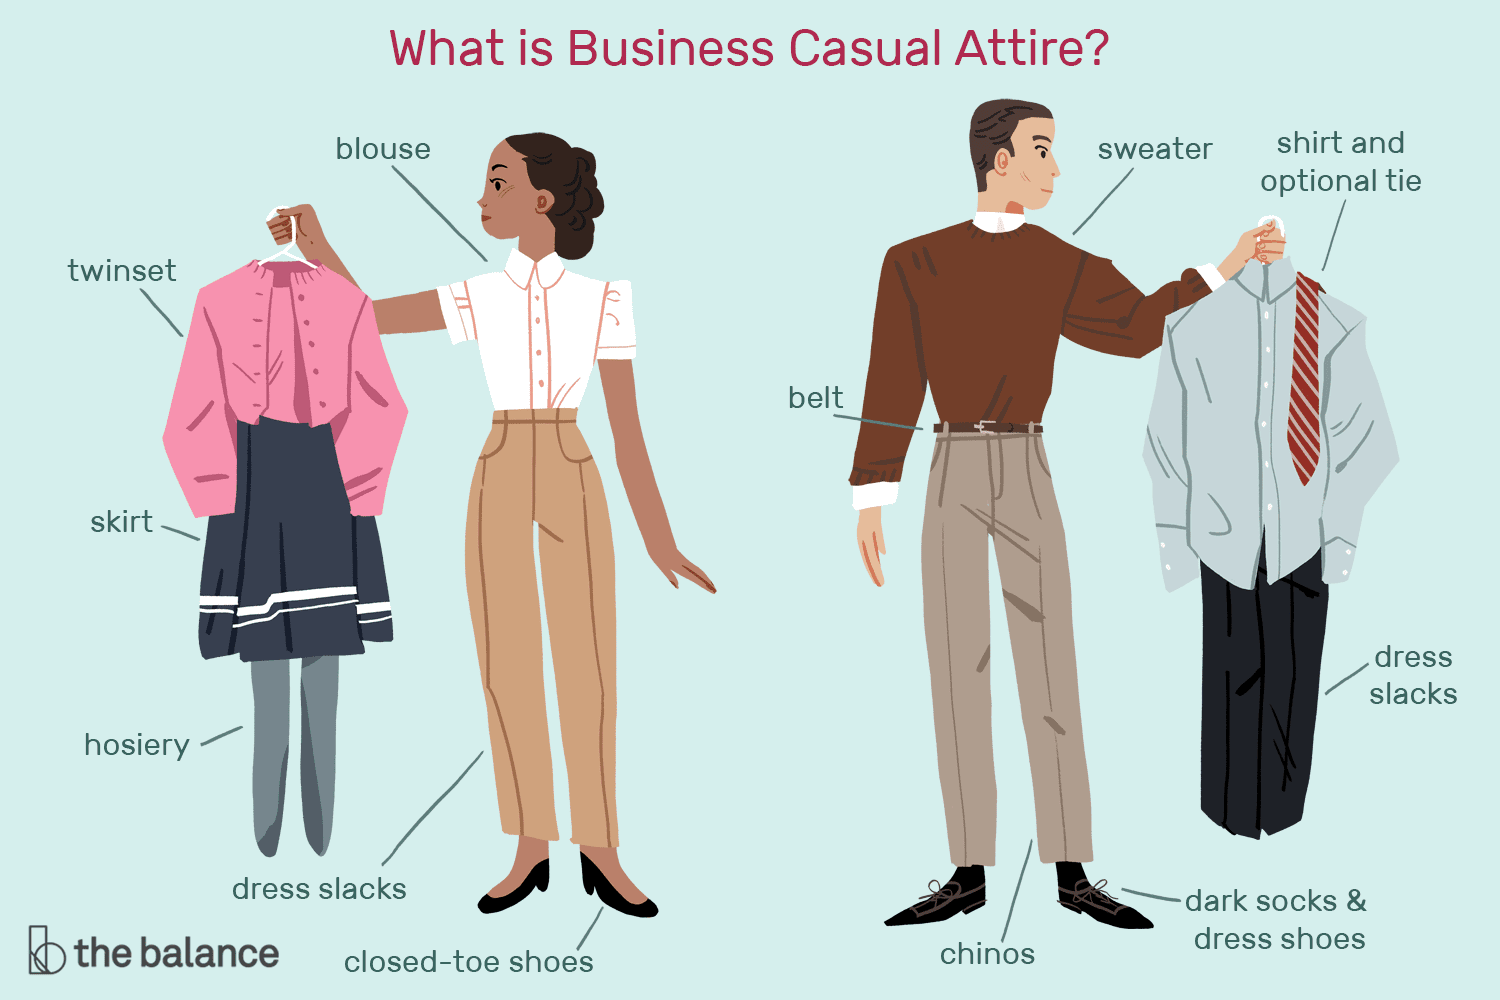 e84eba778e0 What Does Business Casual Attire Mean